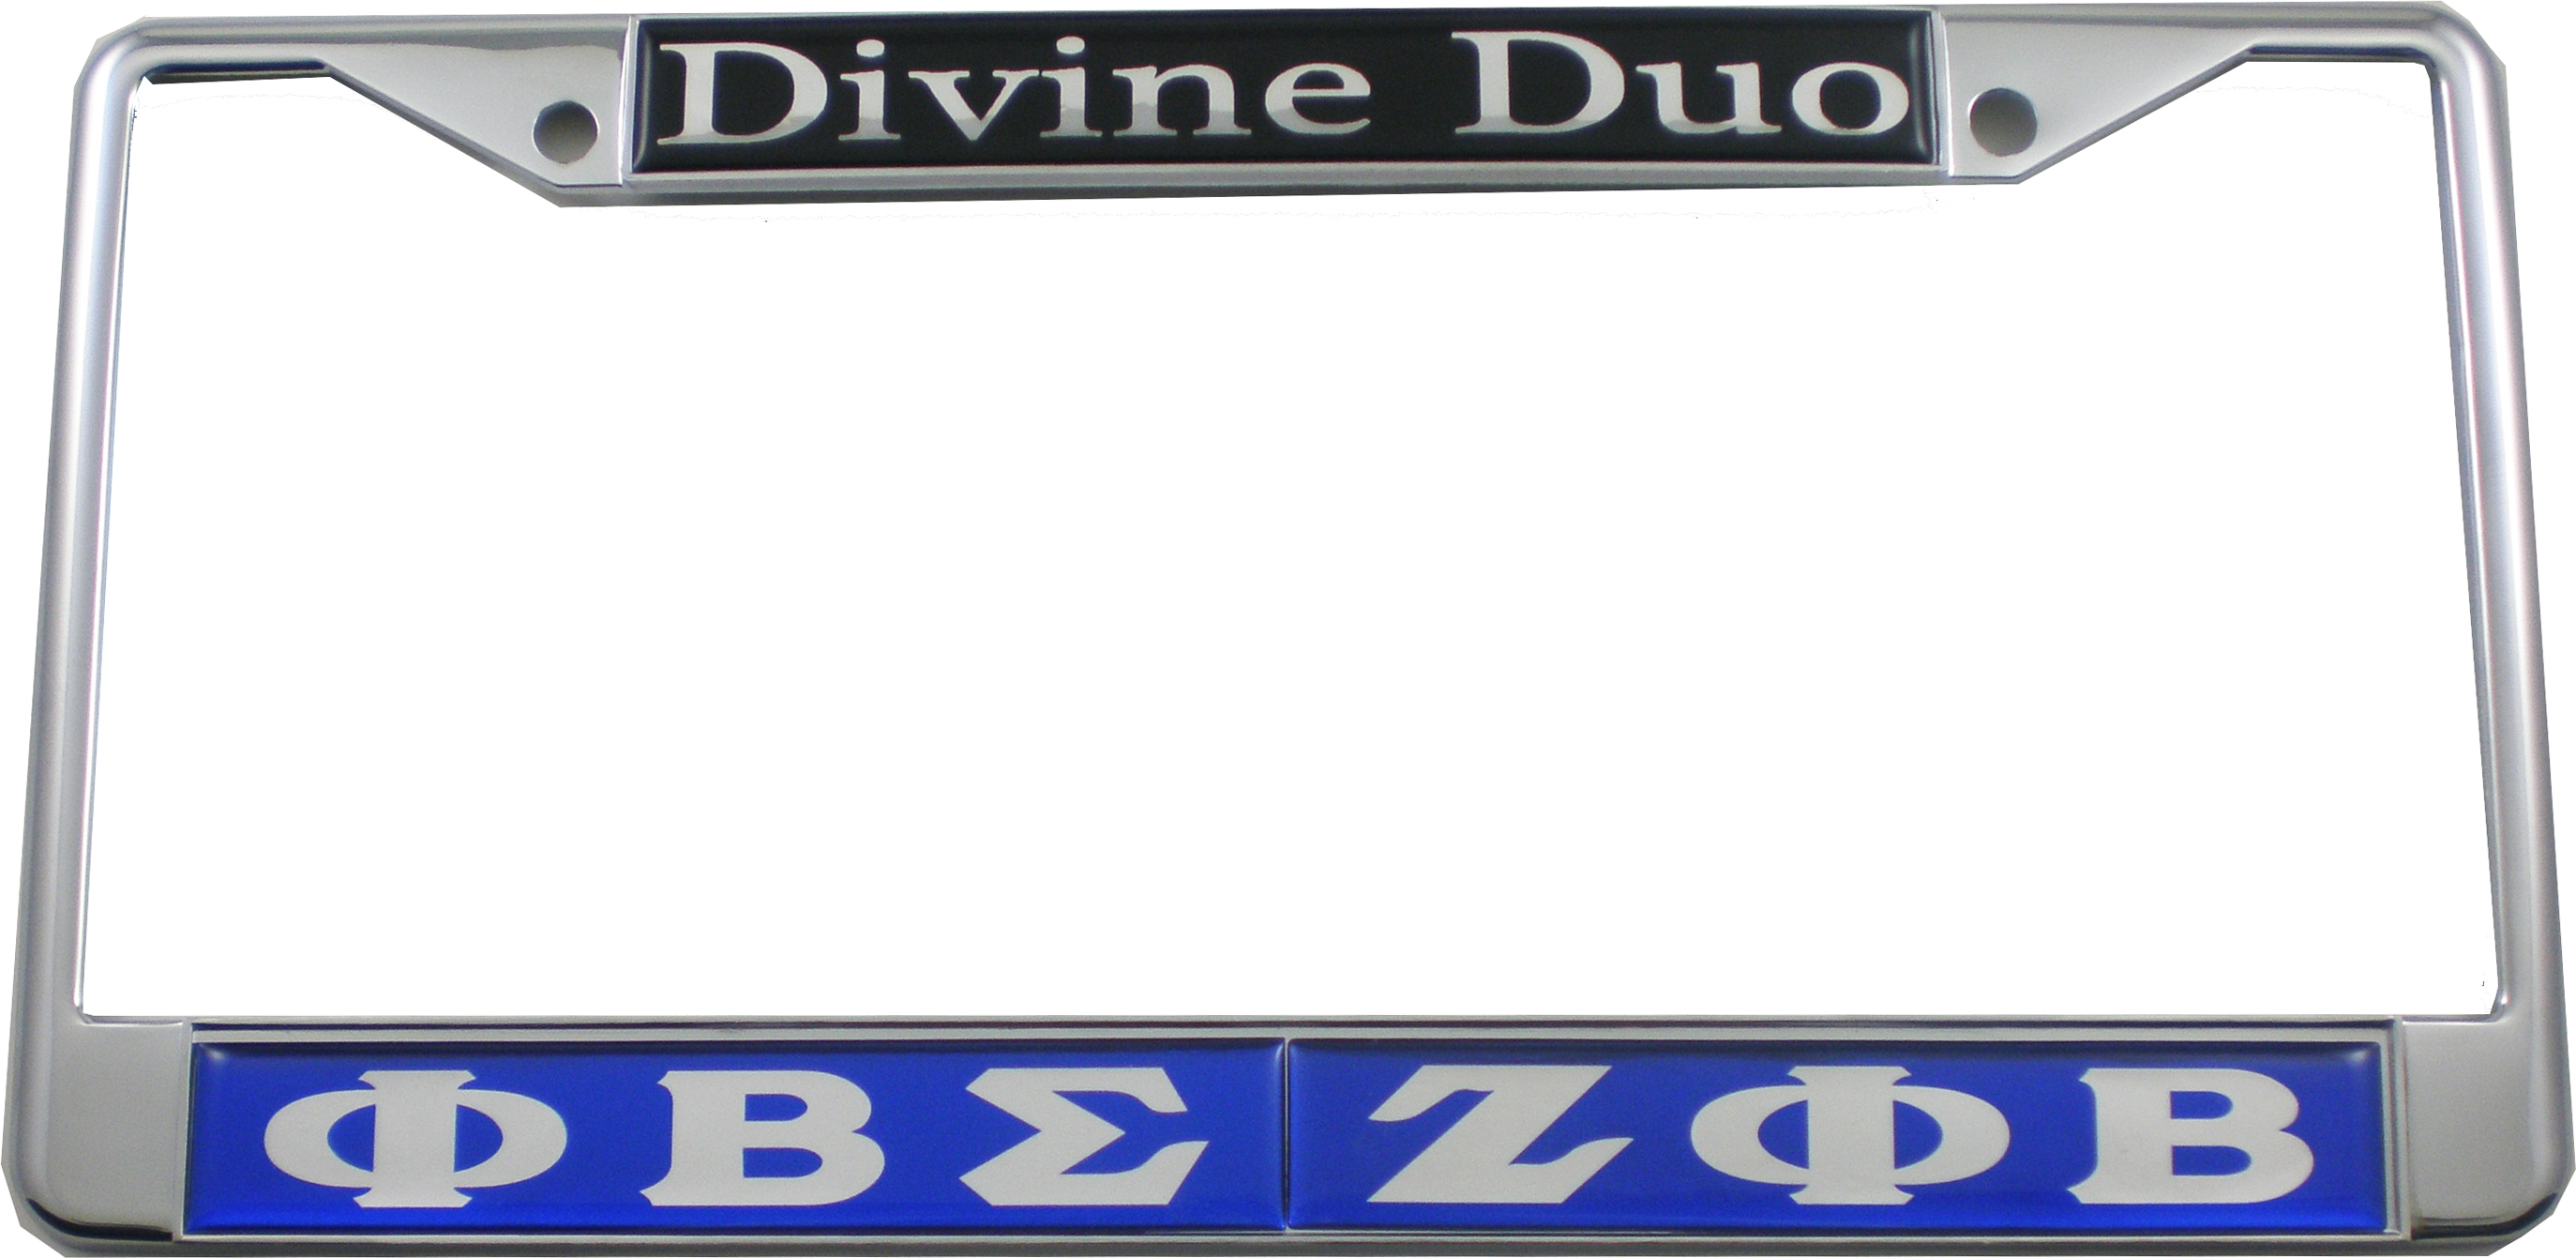 Phi Beta Sigma + Zeta Phi Beta Divine Duo Split License Plate Frame ...